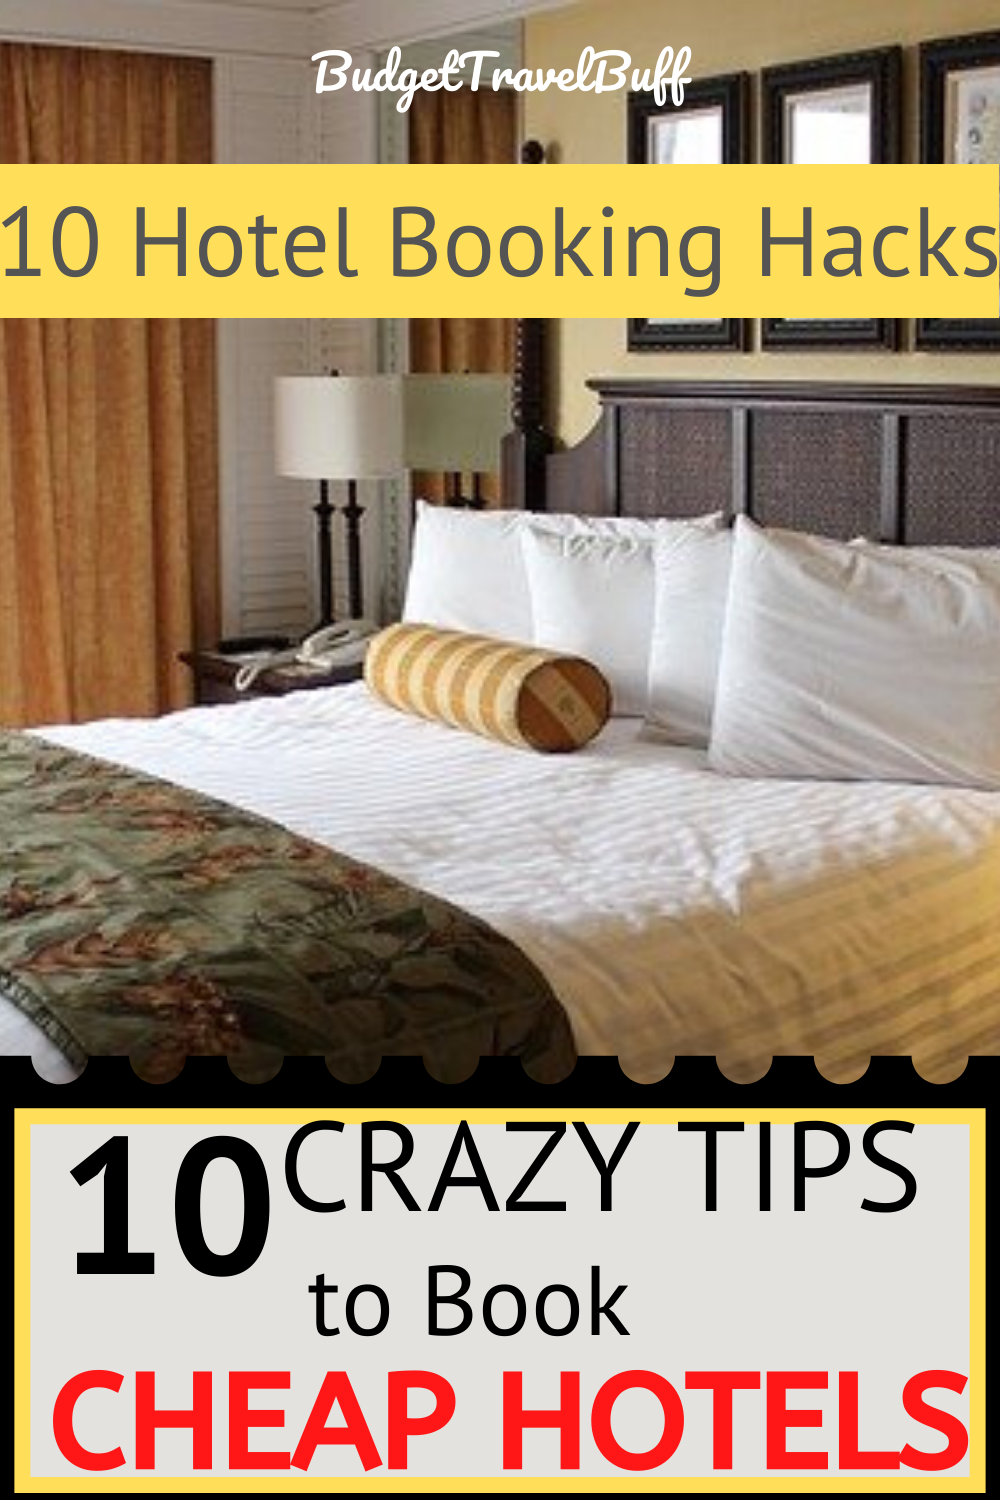 Traveling on a budget? Check out these top 10 secret hacks to find cheap hotel deals and discounts at anywhere. Why spend extra money when you can book insanely cheap hotel just by using tricks on how to find cheap hotels? Bonus: Best and cheap hotel booking sites which are easy too use and can be used as app. #hotelhacks #cheaphotels #findcheaphotels #hotelbookingtips